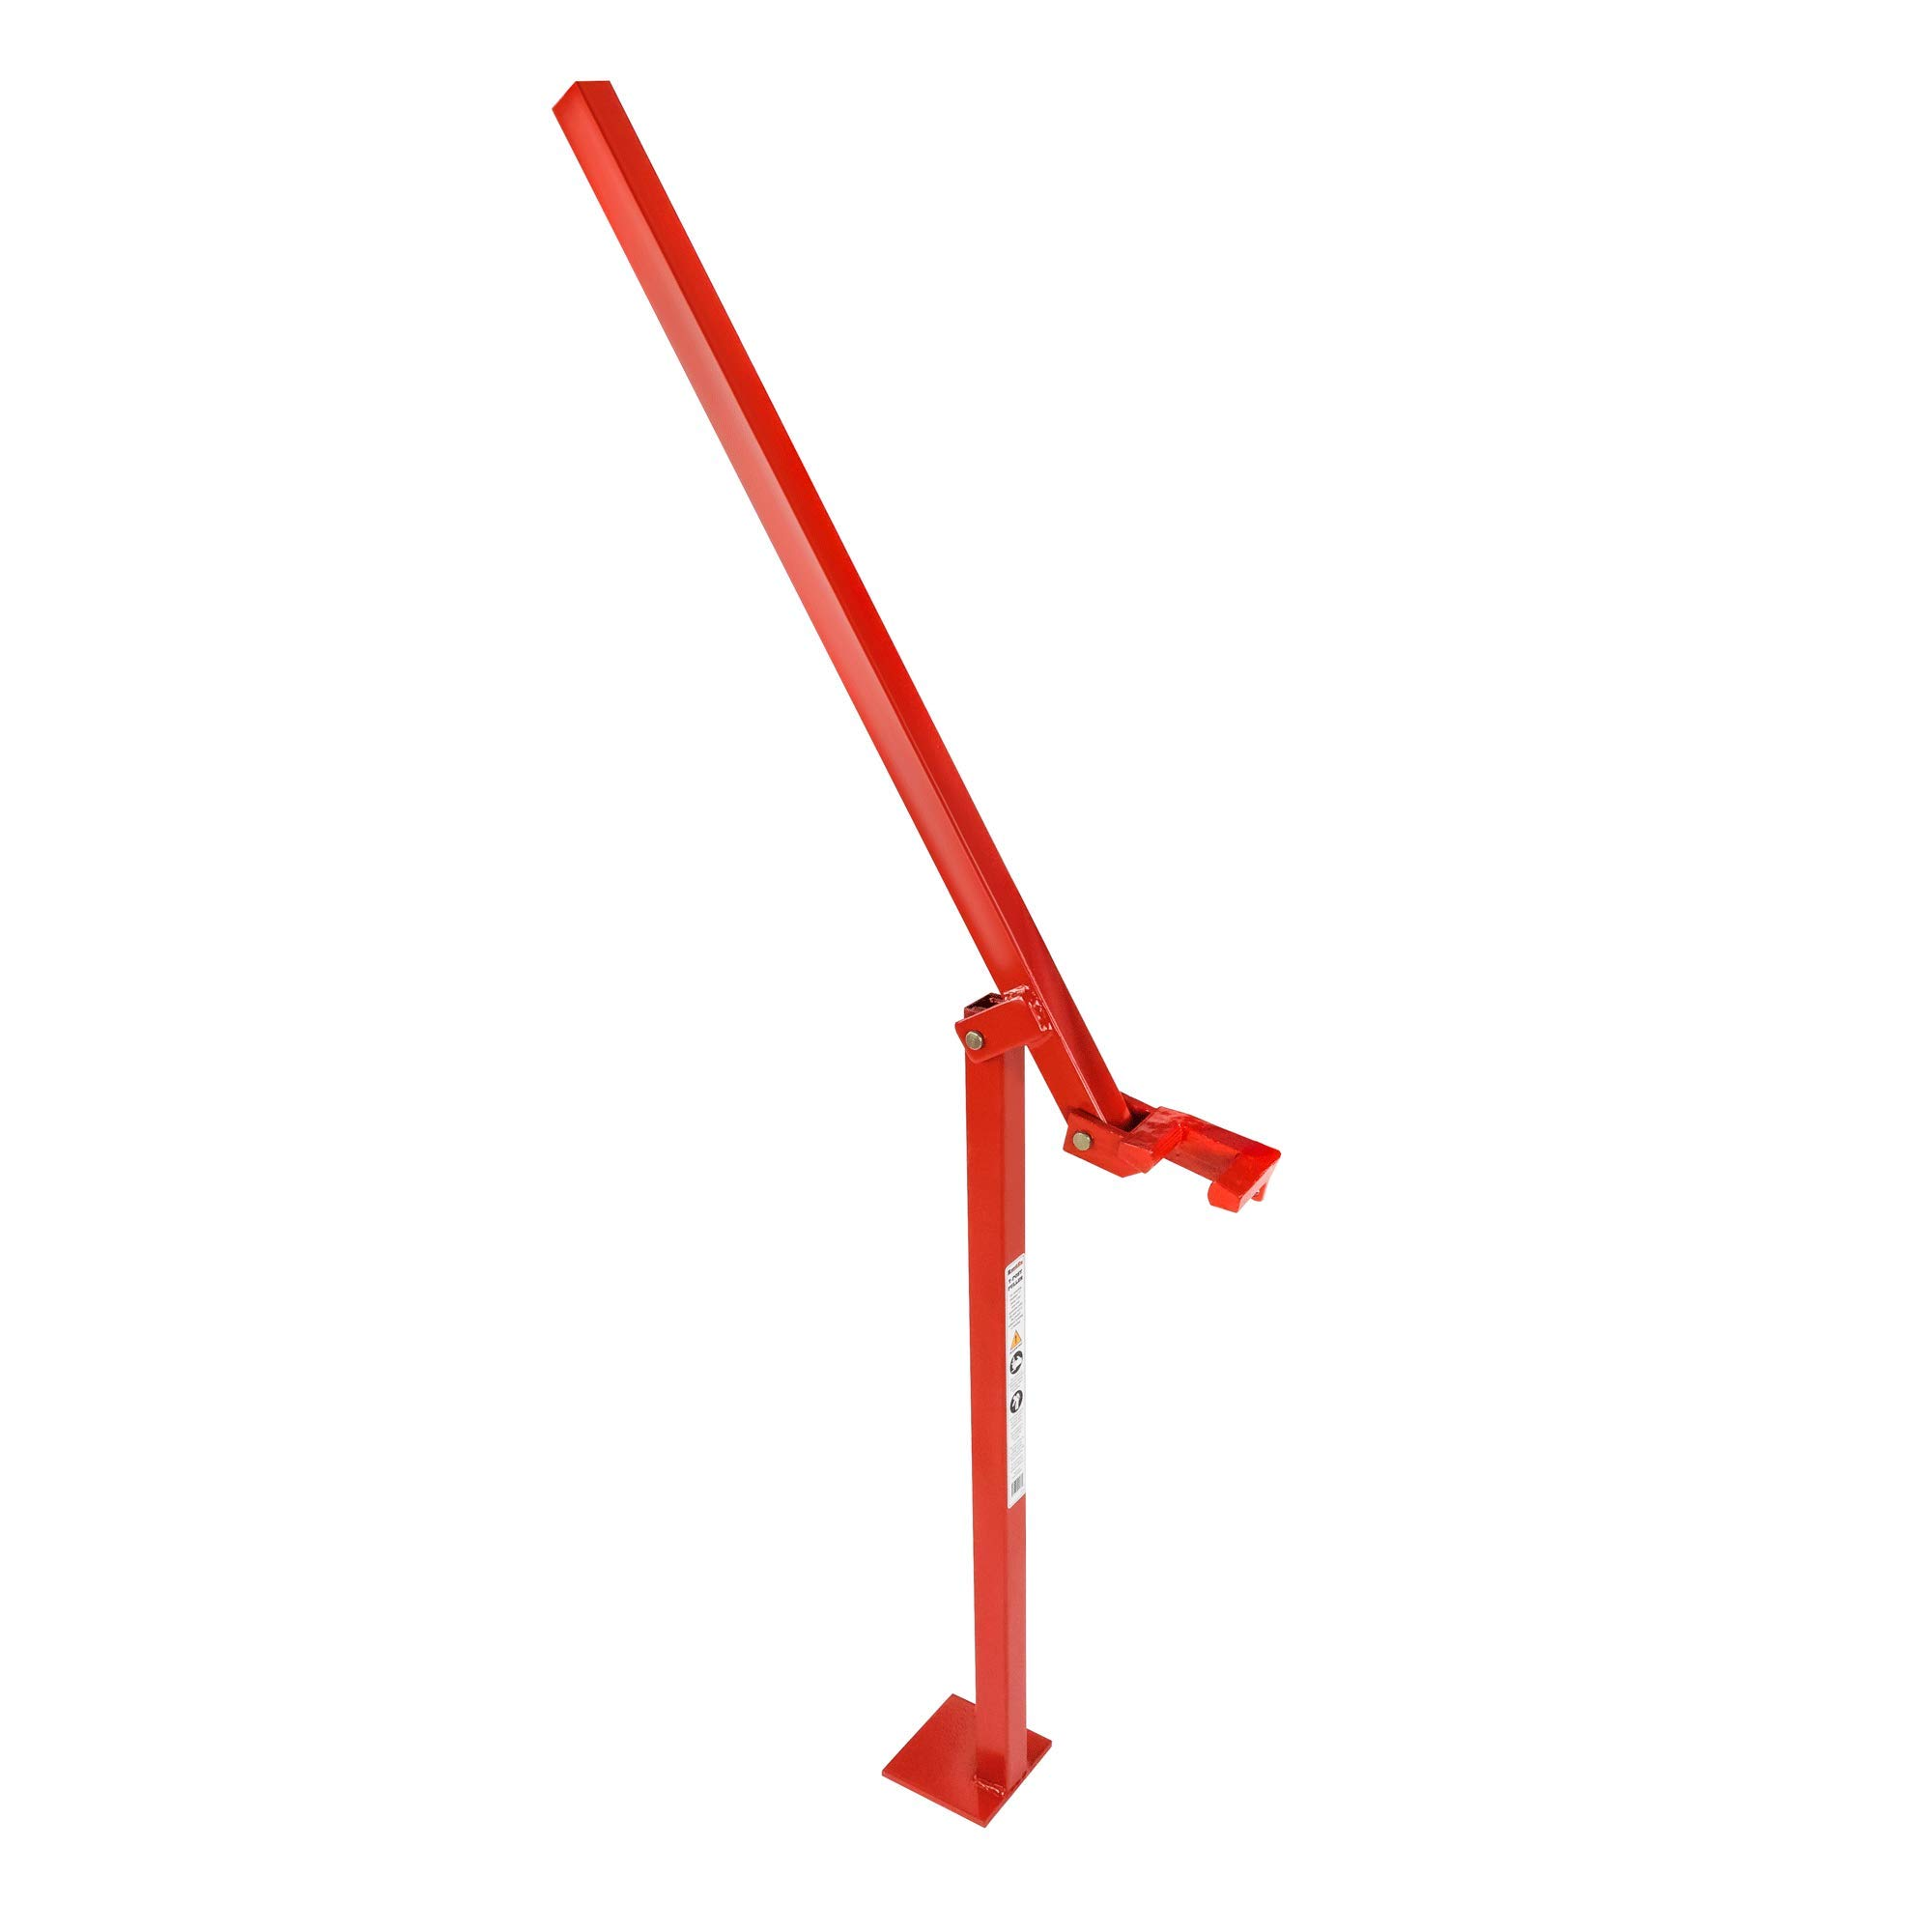 RanchEx 102567 T-Post Puller - for Removal of Studded T Posts, One Person Operation - Red by RanchEx